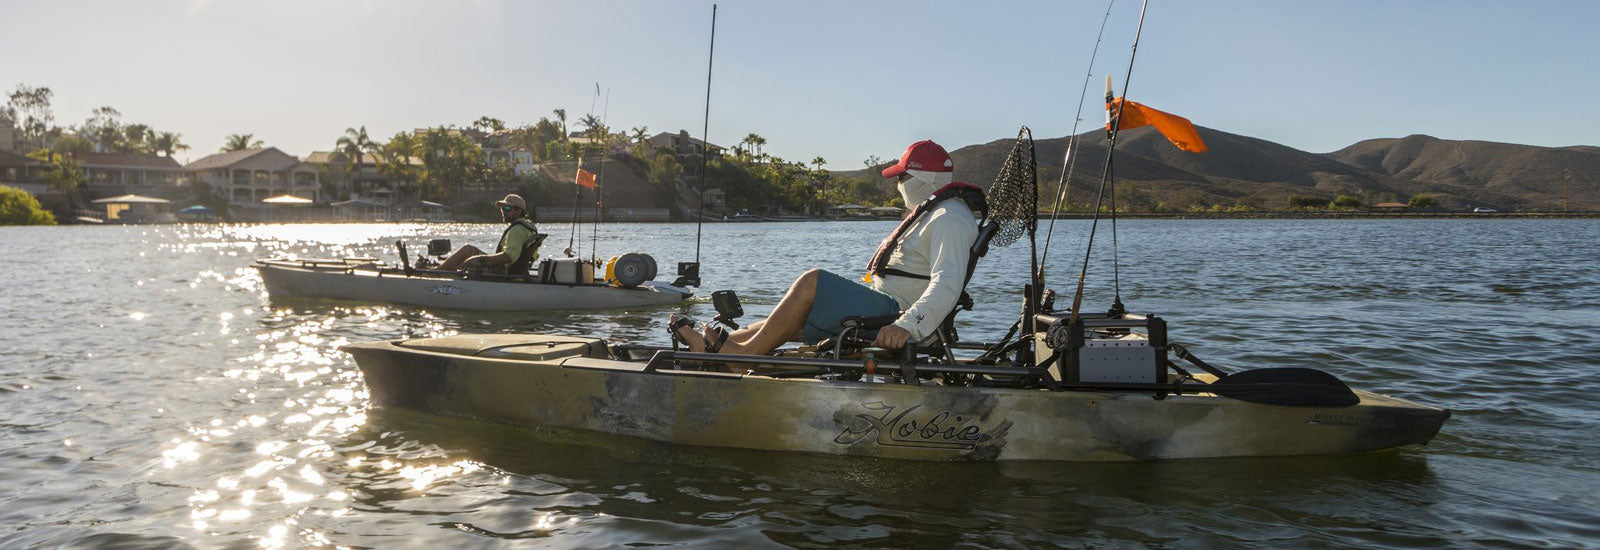 Kayak Fishing Safety Accessories Practices